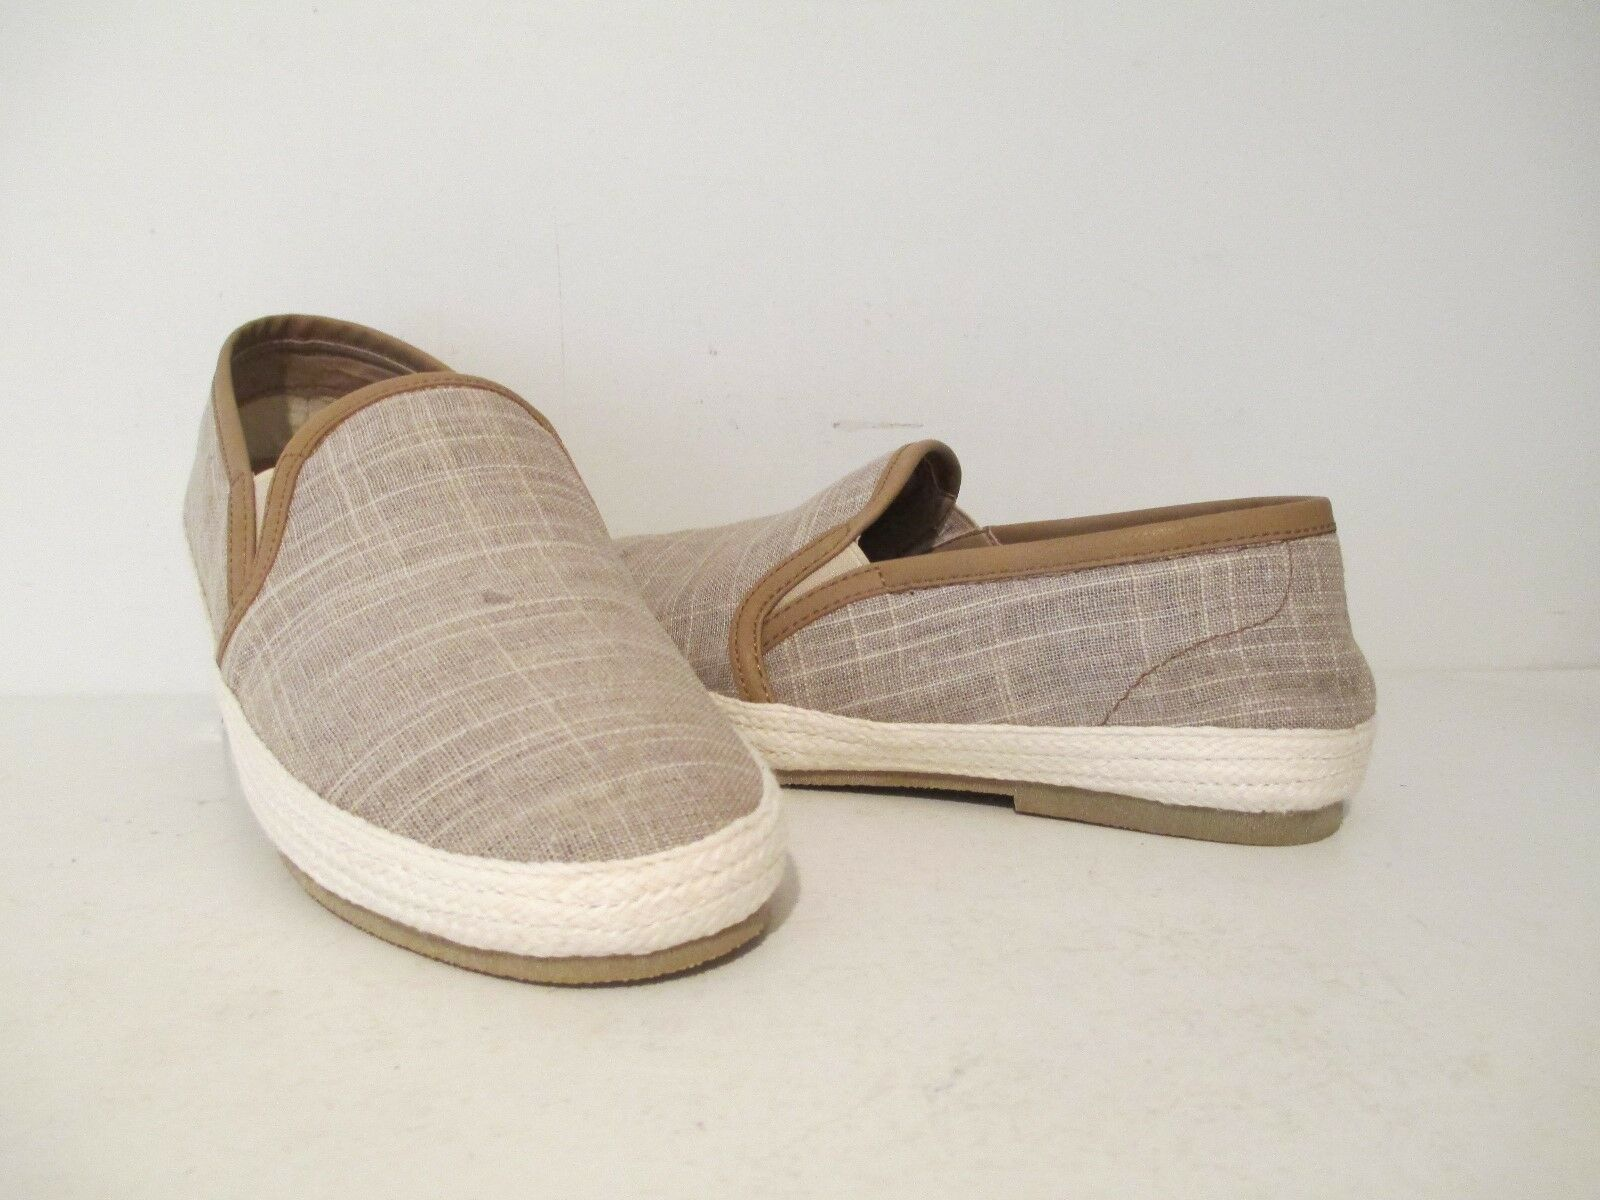 GBX Mens Dart 13566 Canvas Casual Slip On Loafers Taupe Size 8.5 M